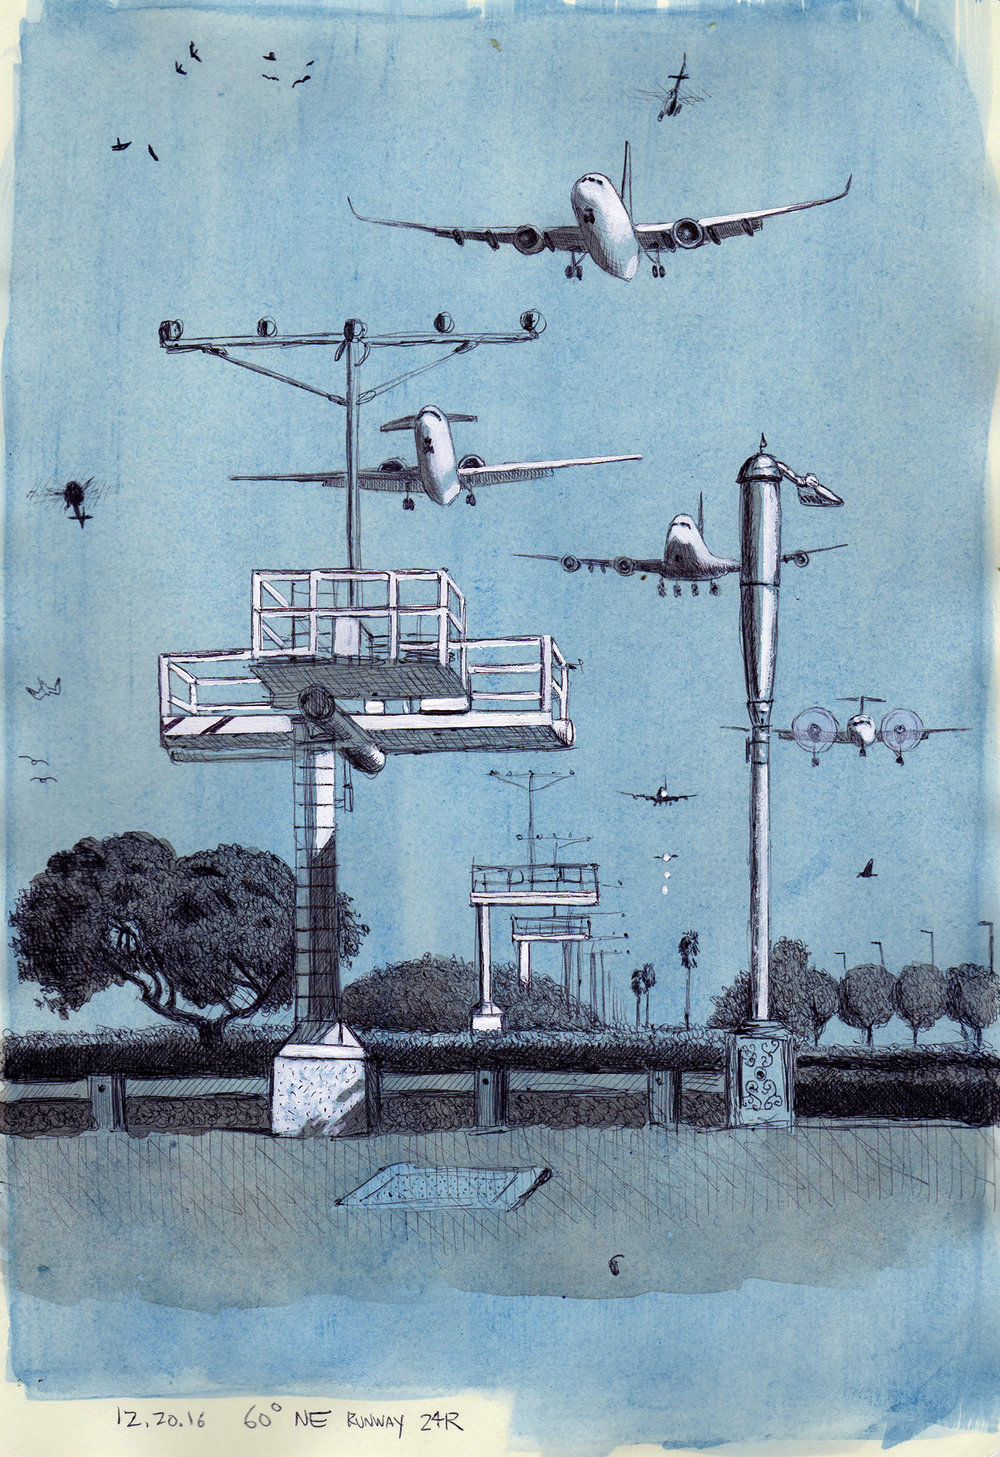 Cole Case,  Runway 24R Incoming Looking 60 Degrees NE 12.20.16 , 2016, ink and gouache on paper, 11.5 × 8 inches